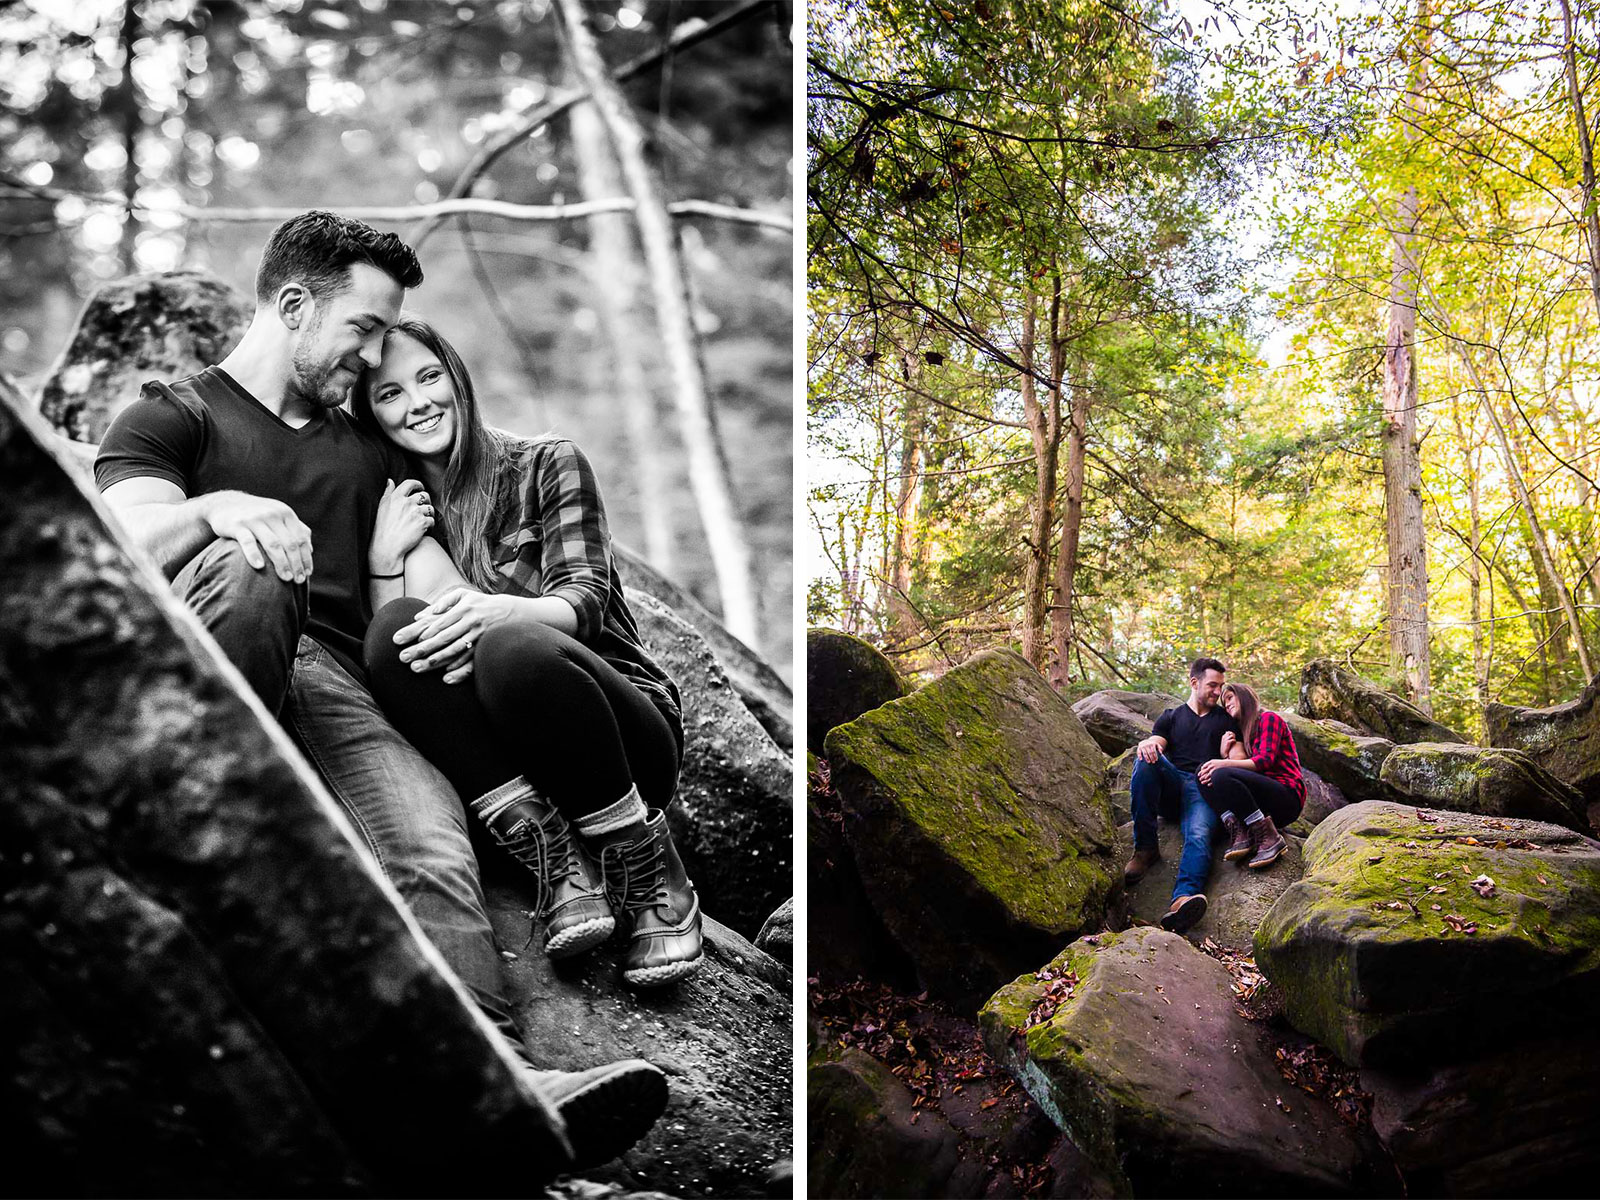 Eric_and_Christy_Photography_Blog_Stephanie_Nick_Engagement-4-5